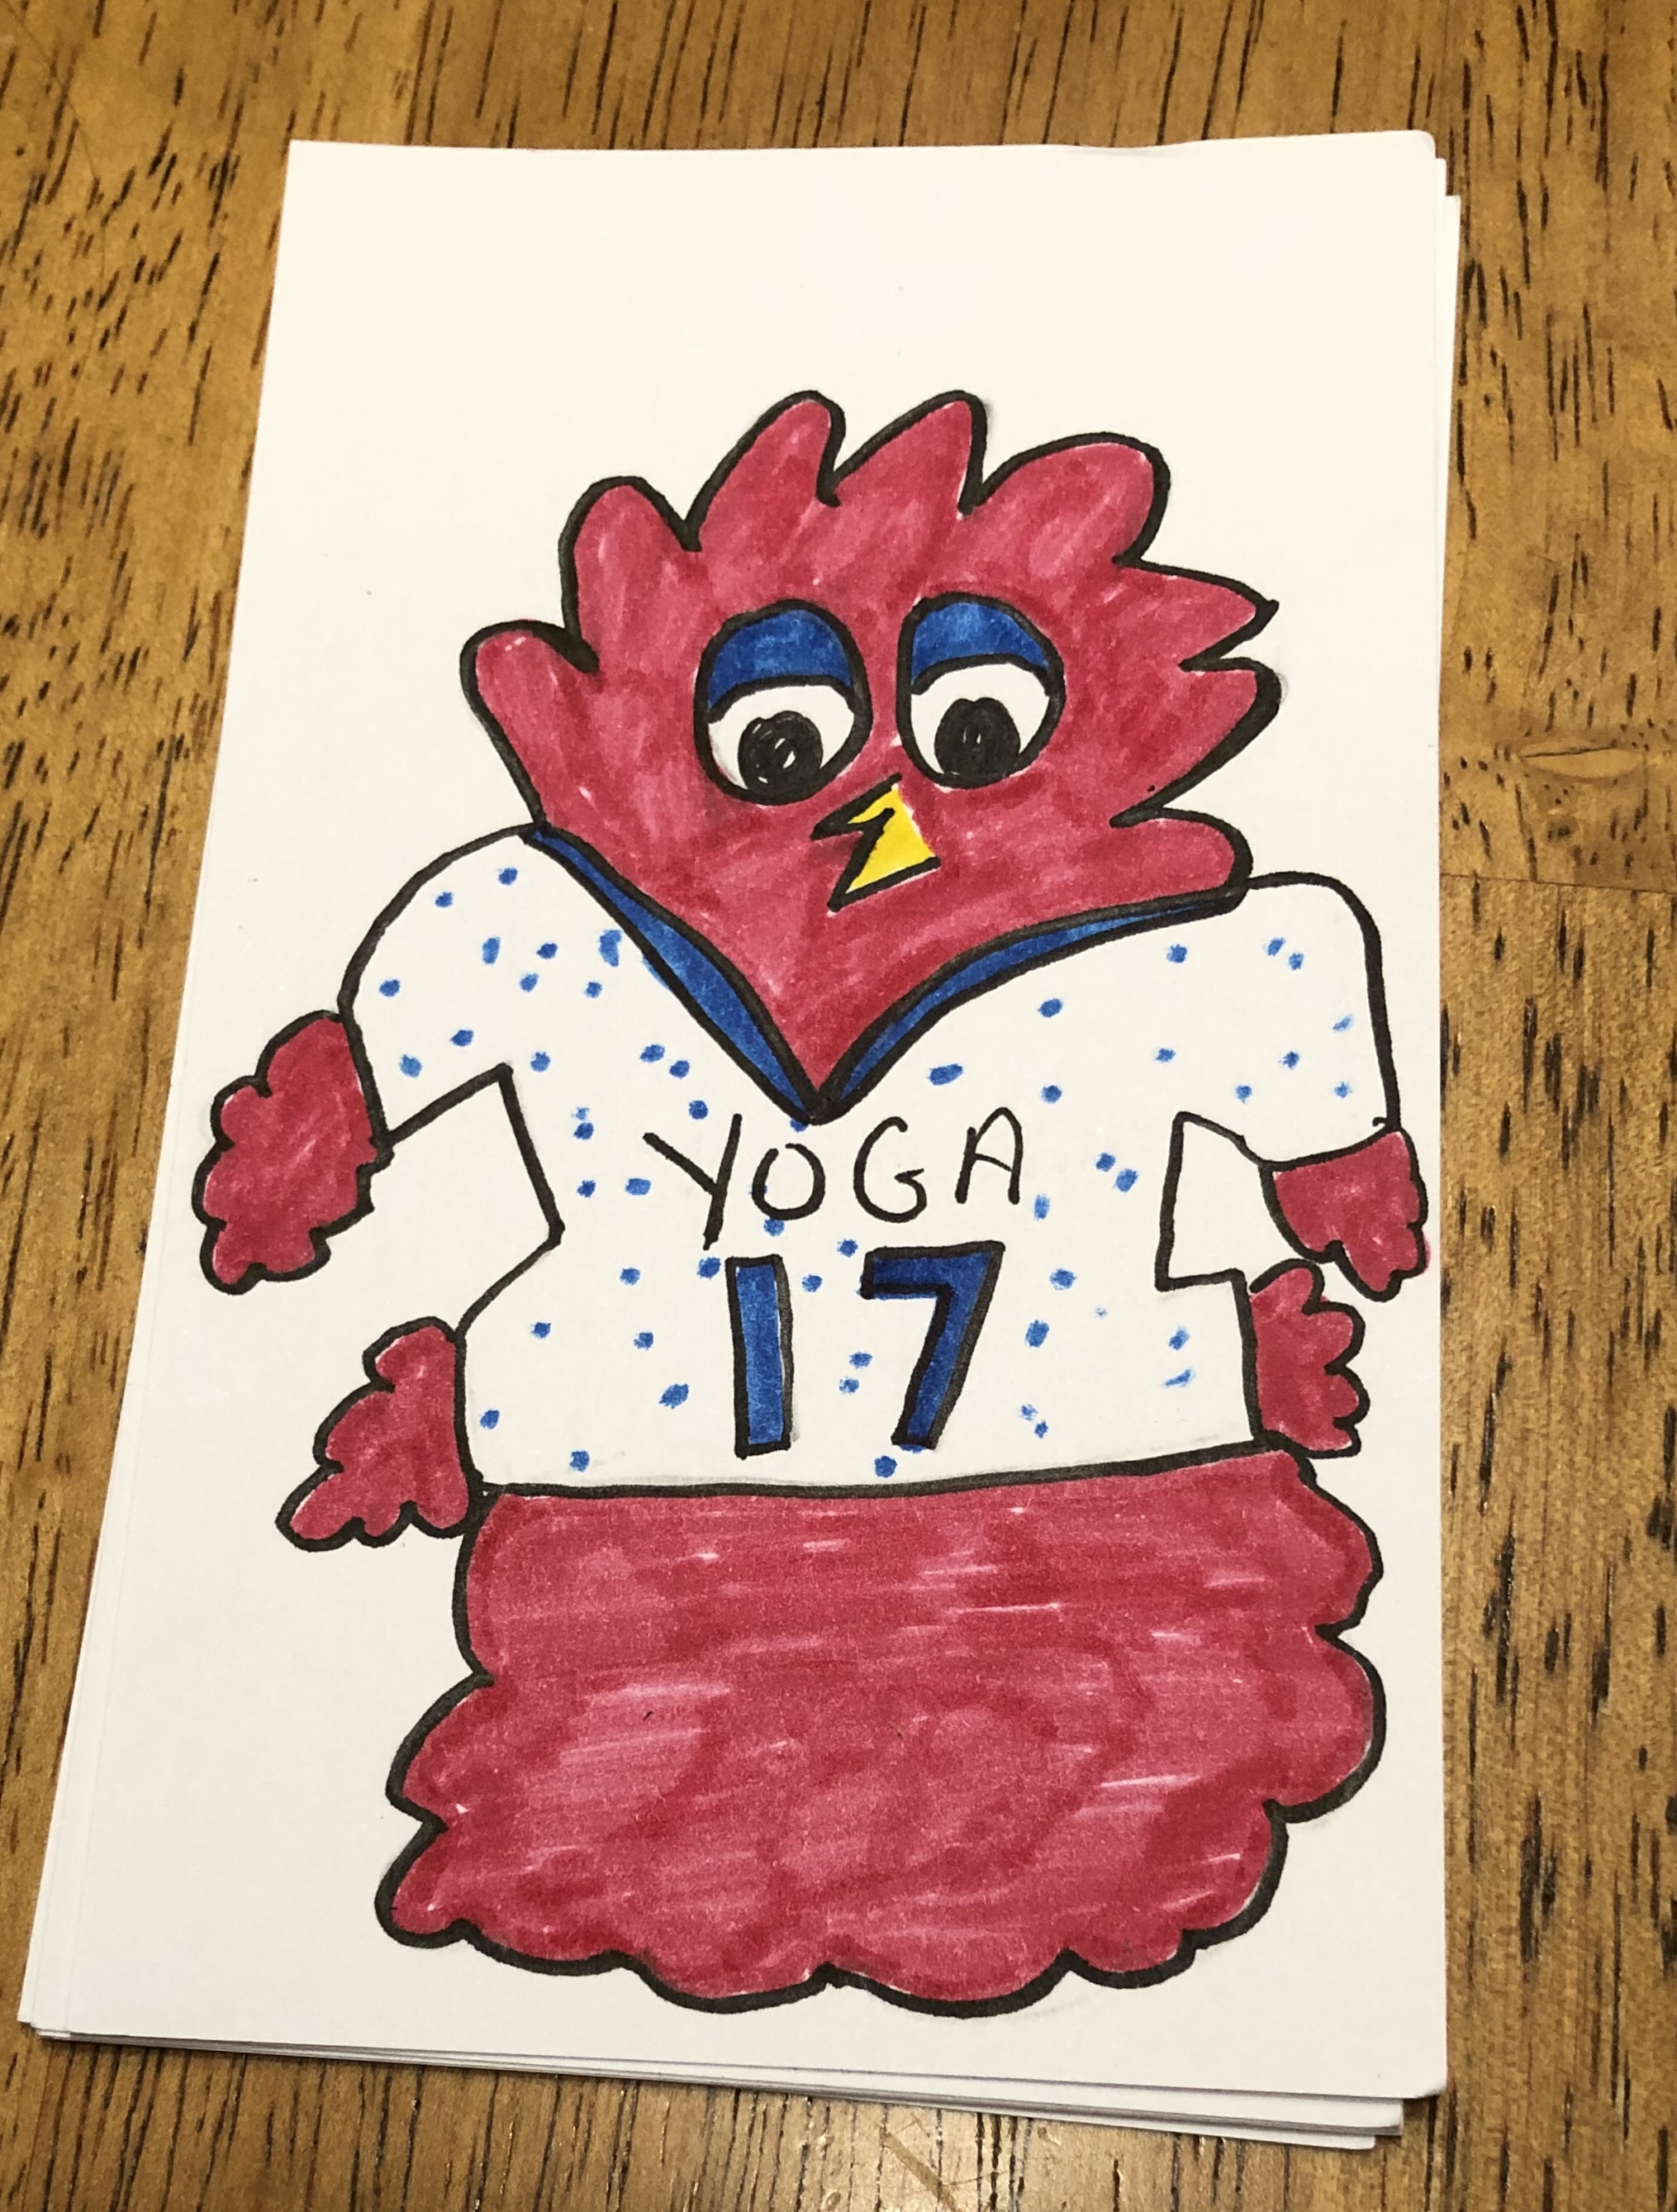 A drawing of a red fluffy monster with a beak, wearing a sports jersey that says 'Yoga 17'